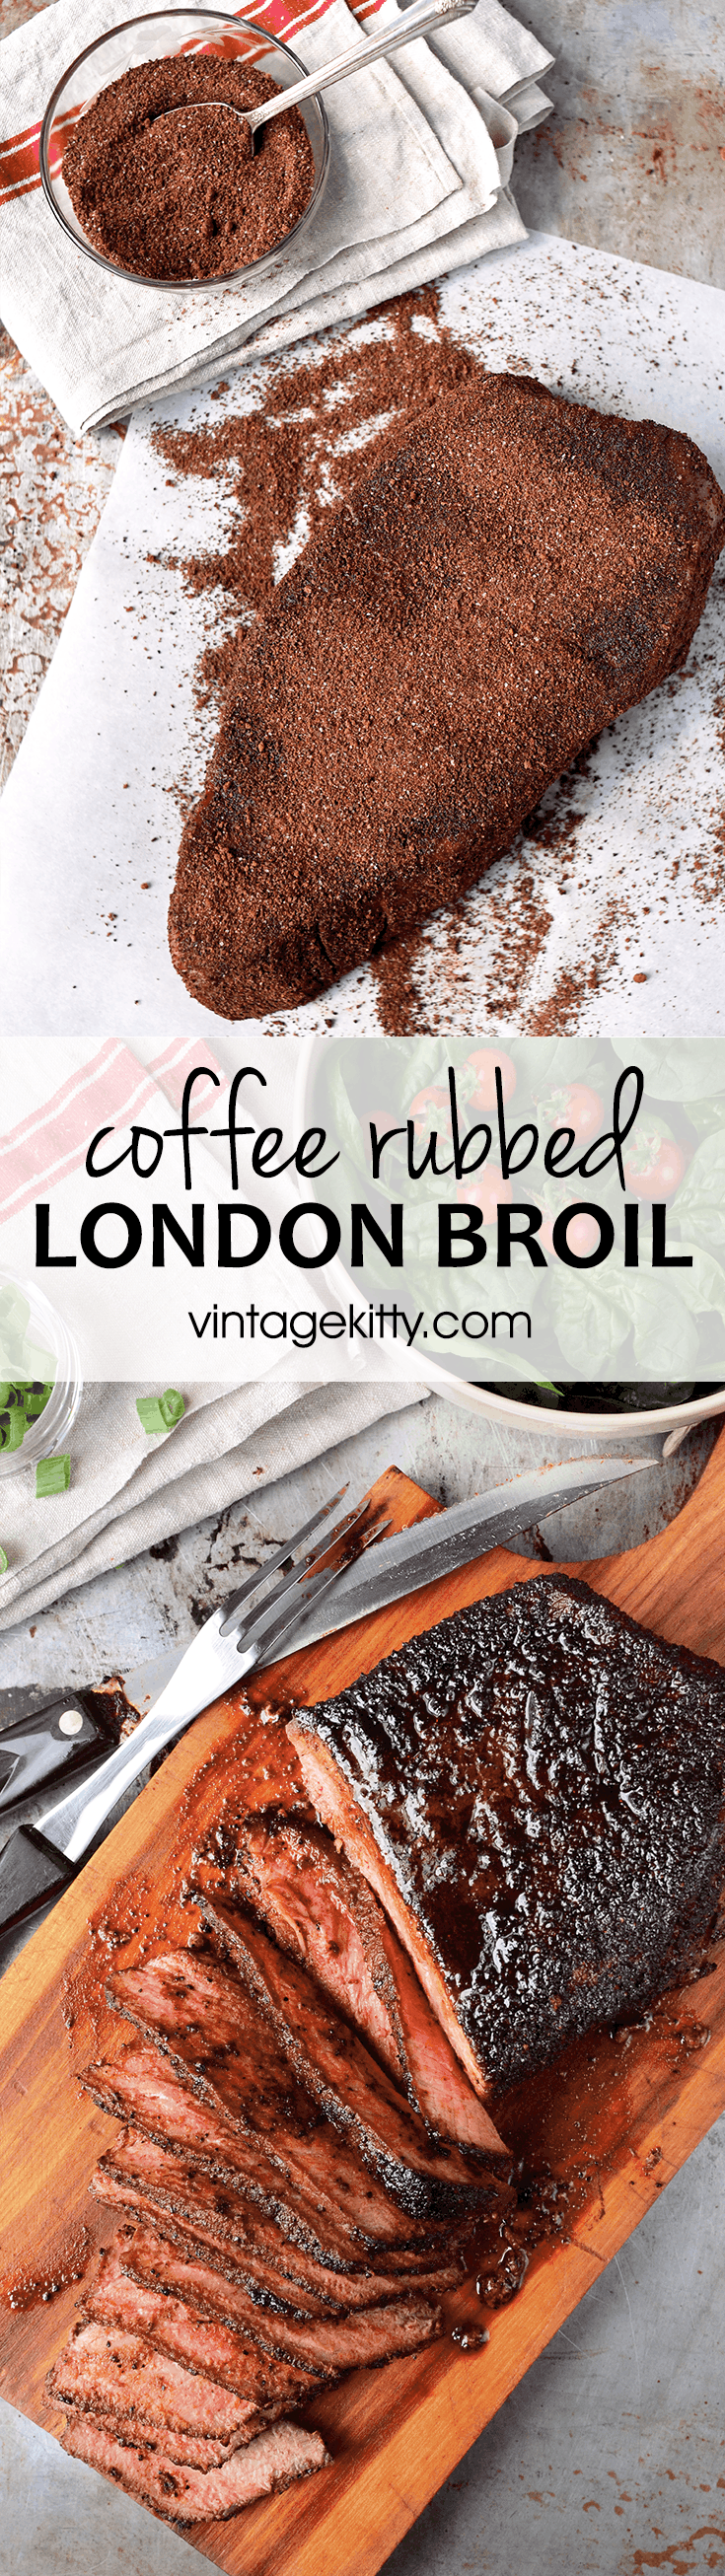 No marinating required! Cheap eats meets gourmet dry rub in this easy London broil #recipe. It cooks in under 30 minutes and is stellar as a dinner main dish.